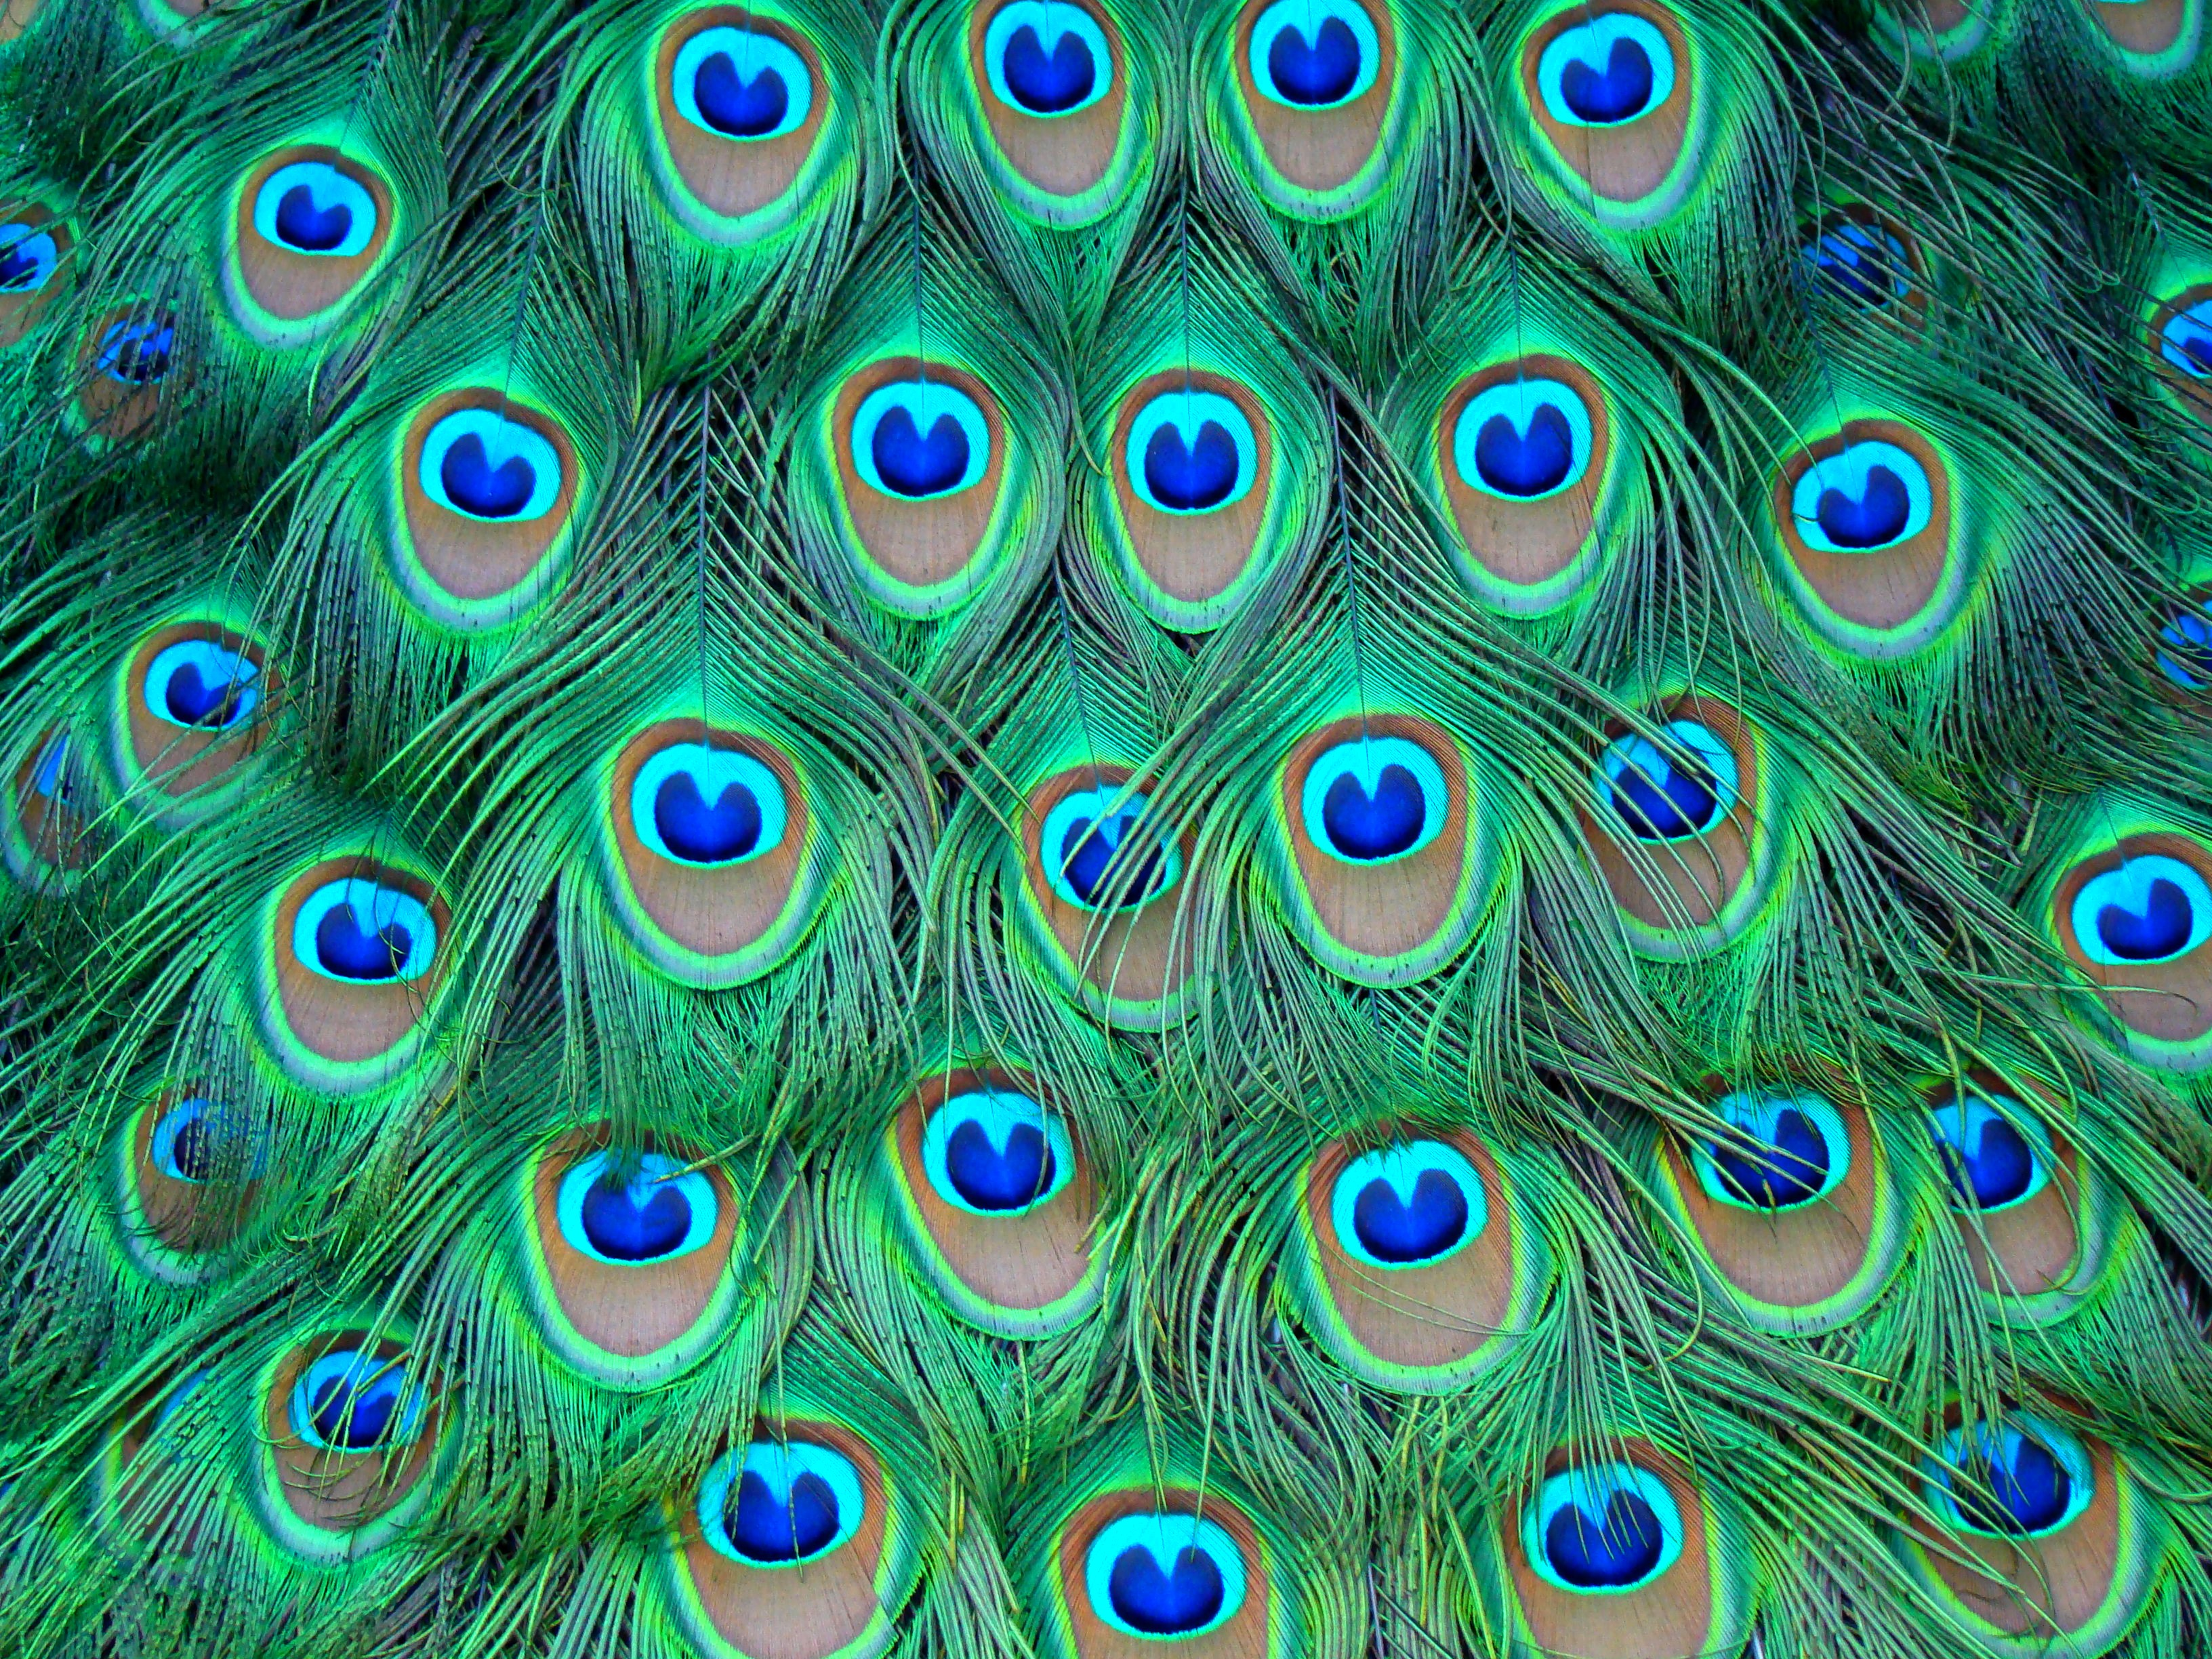 Peacock Feather Design Wallpaper